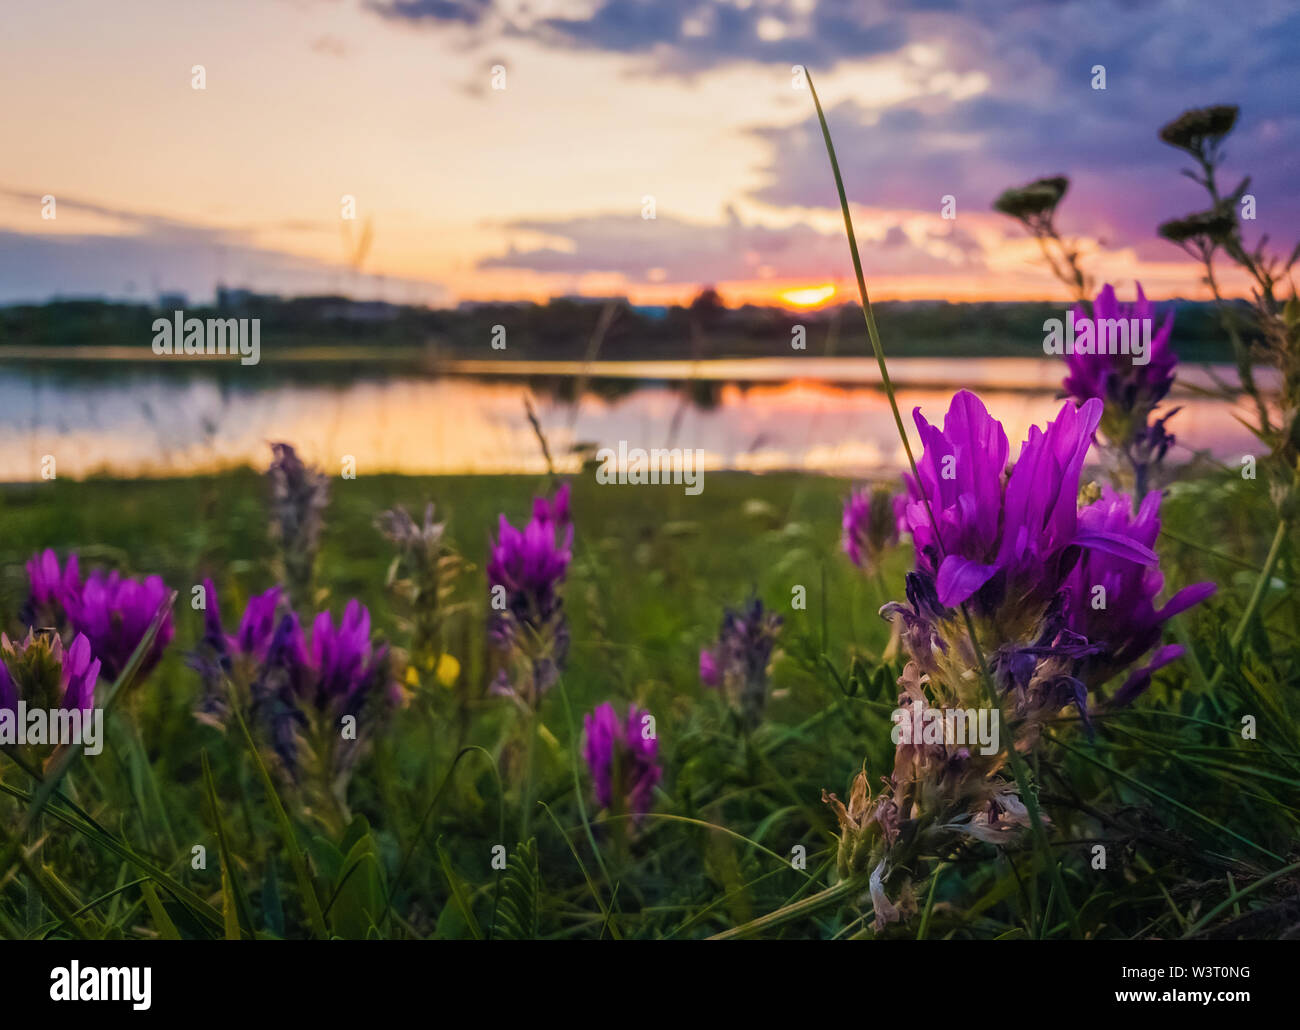 Close up of wild, purple flowers blooming in the meadow near lake over sunset background in a calm summer evening. - Stock Image